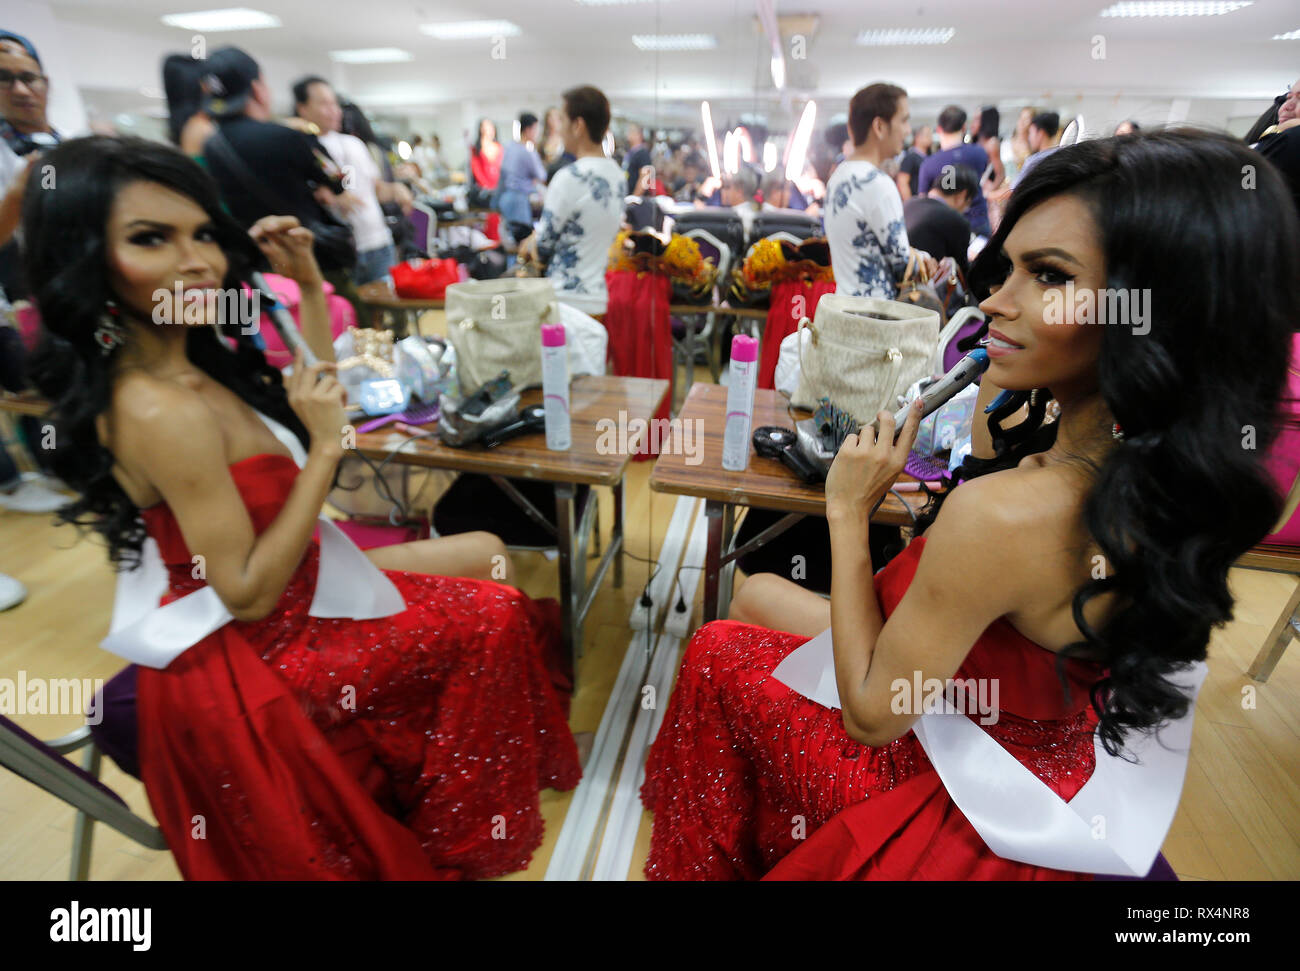 A beauty contestant from Peru, Adriana Jya seen preparing backstage